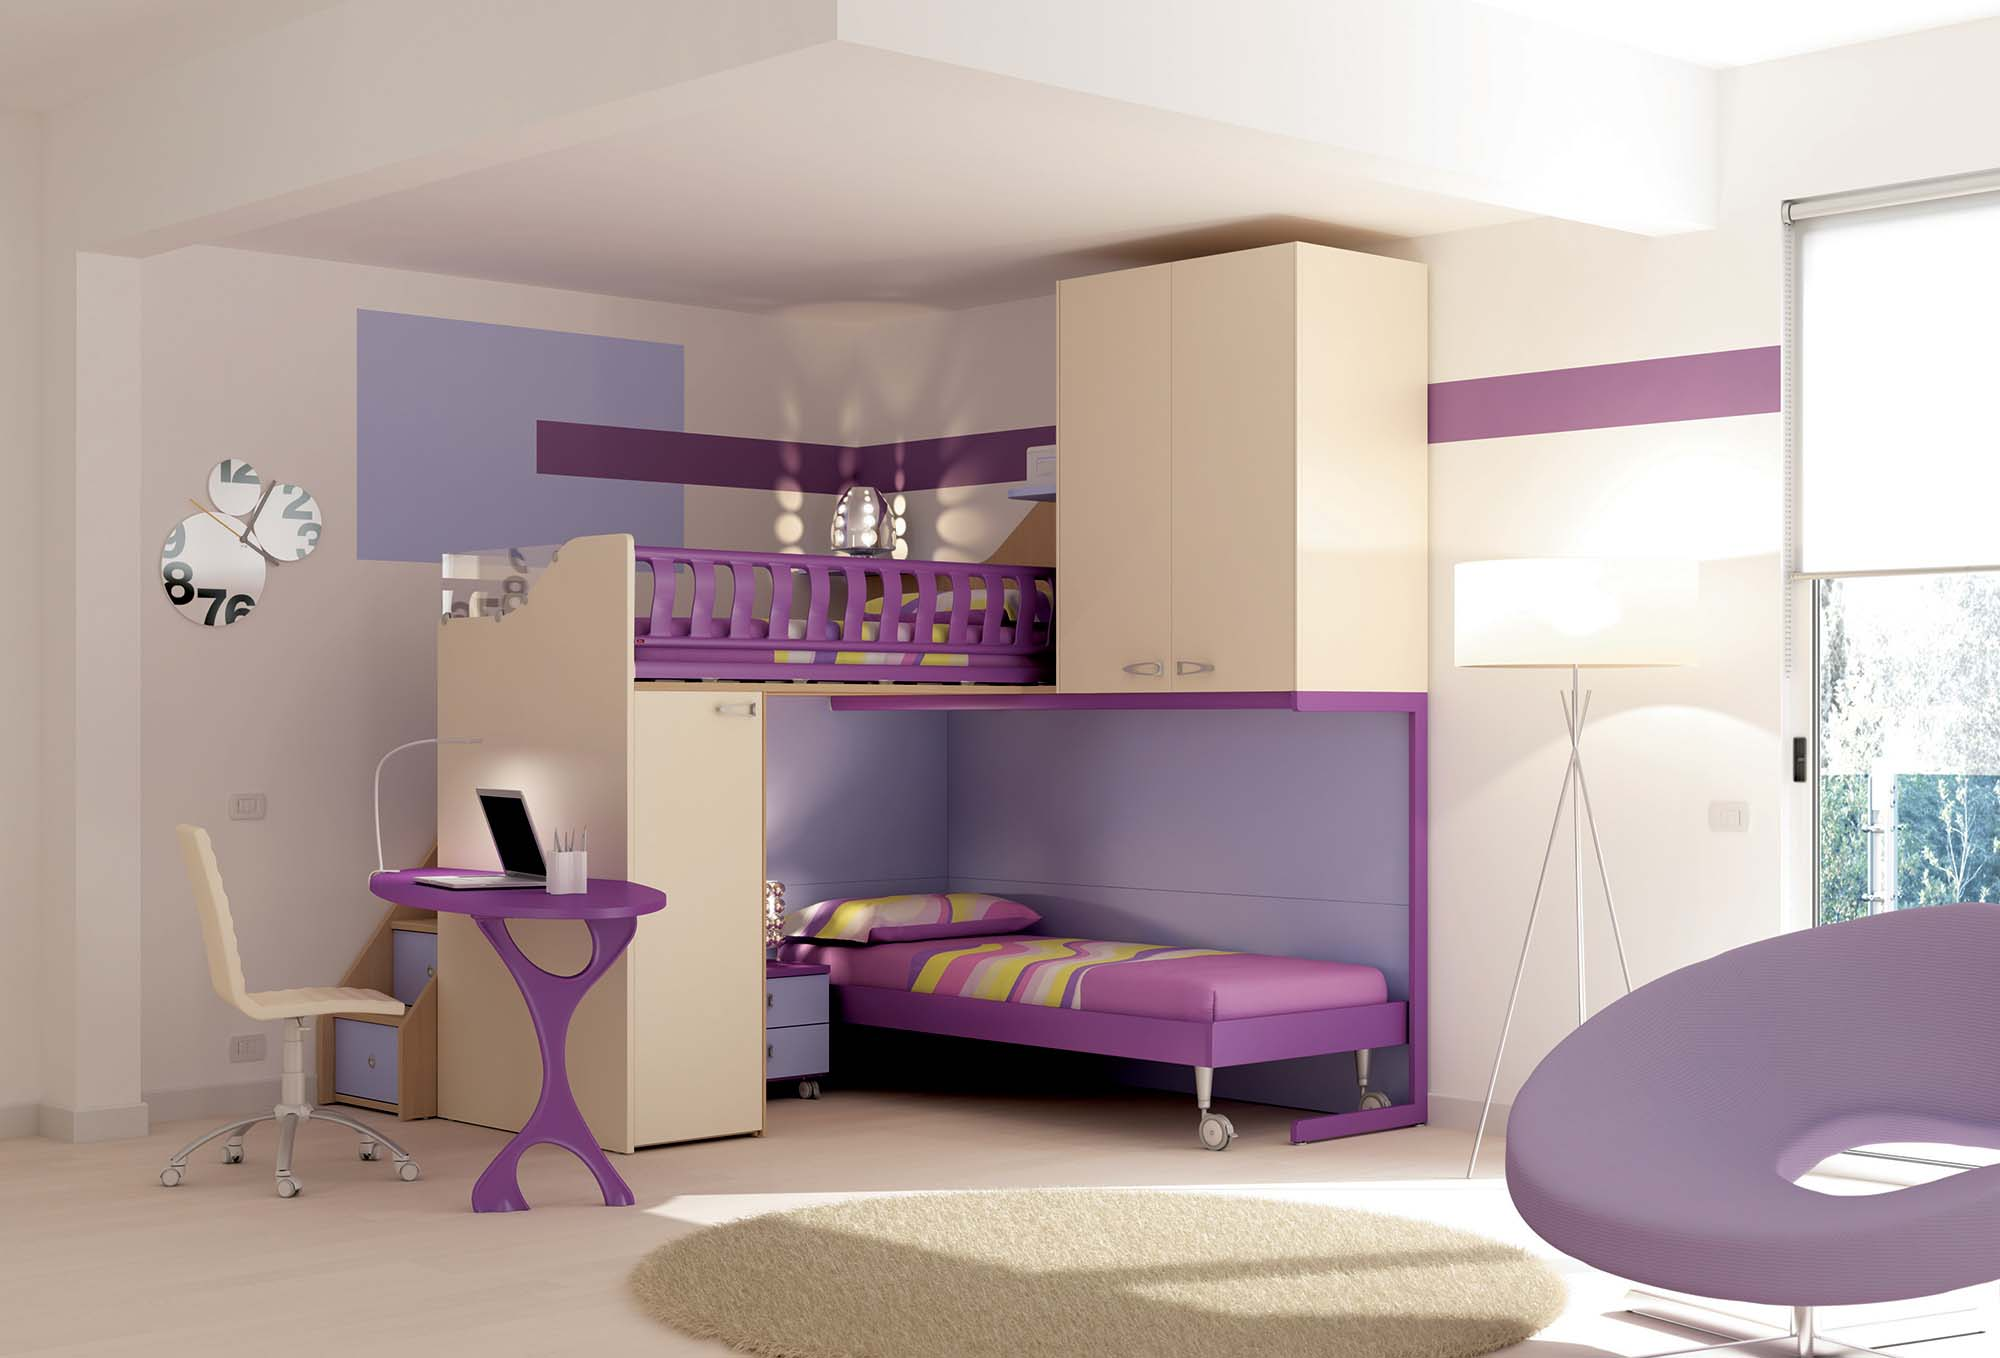 mezzanine chambre enfant 26 aot sur la mezzanine un. Black Bedroom Furniture Sets. Home Design Ideas